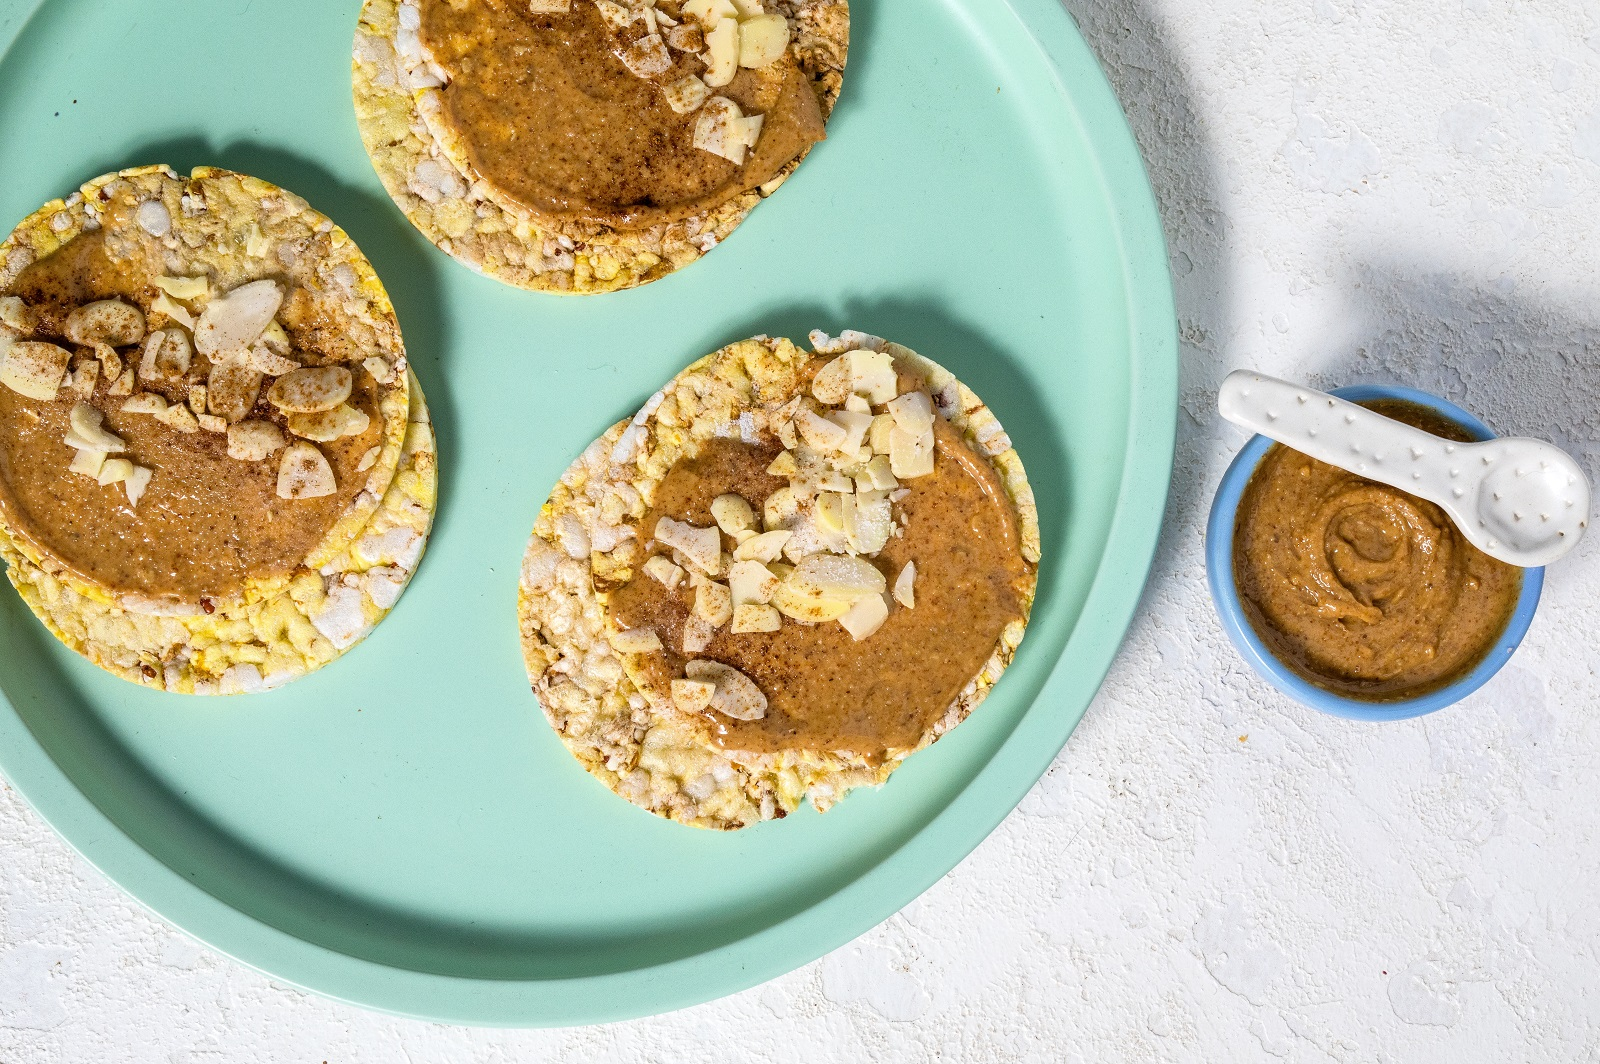 Sweet treat of CORN THINS slices with Almond butter & cinnamon sugar